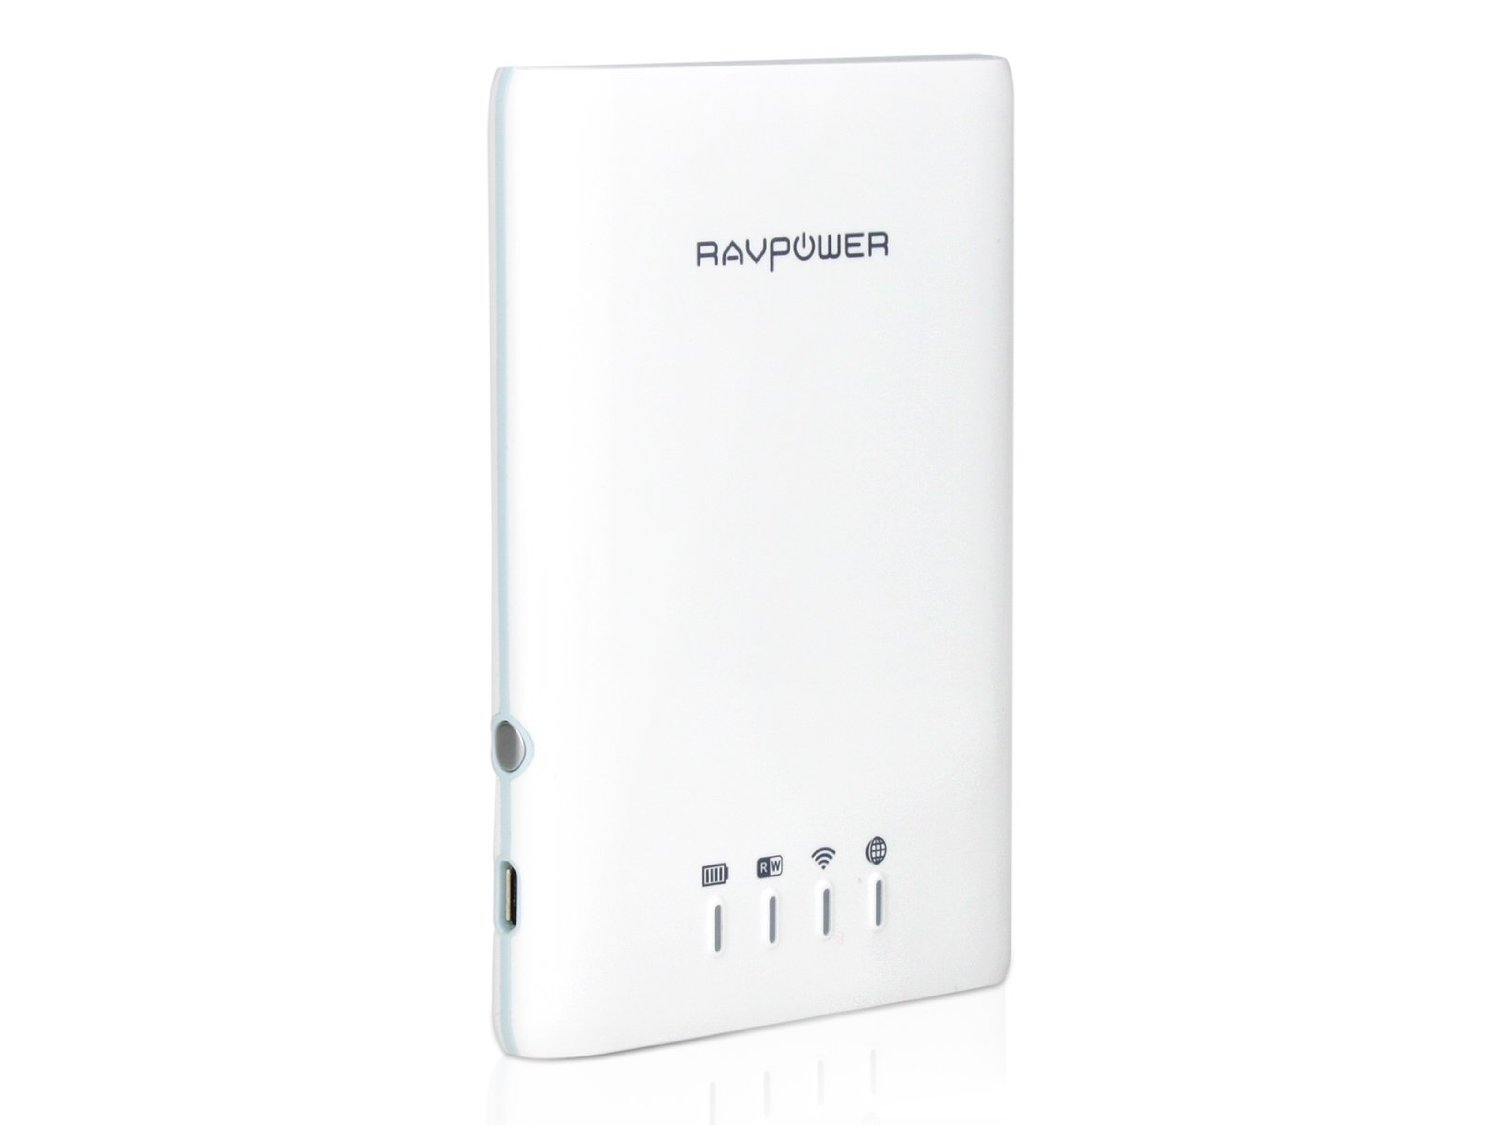 ravpower filehub 5-in-1 rp-wd01 review